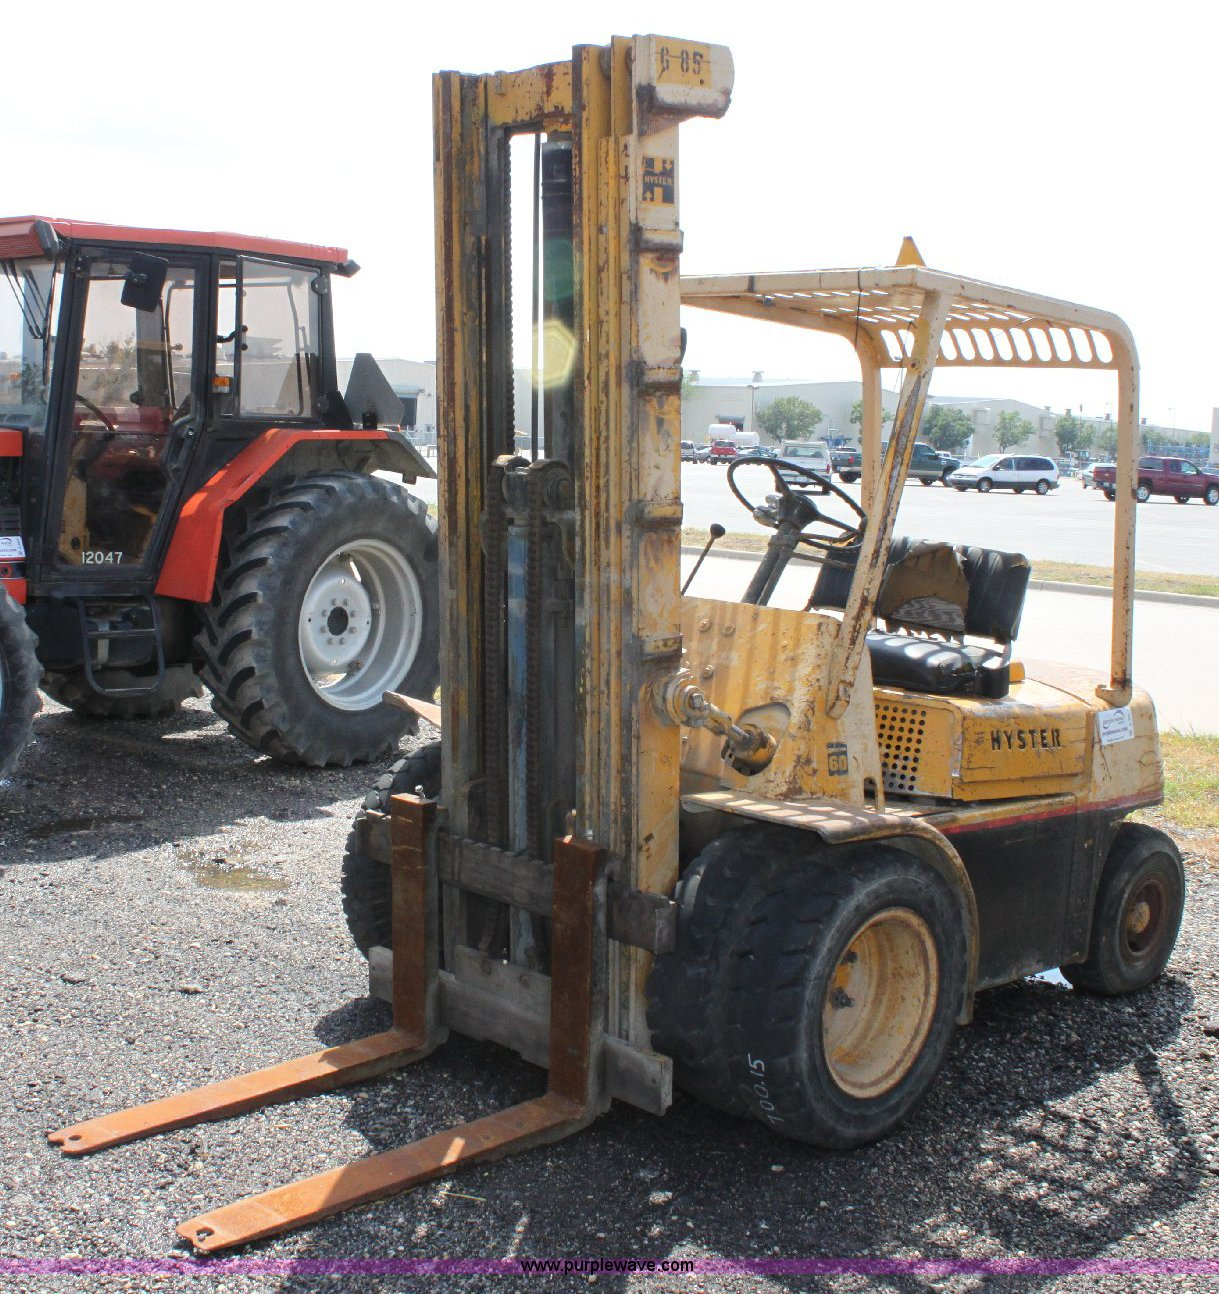 hyster challenger 60 forklift item a3607 sold august 31 rh purplewave com  Hyster 40 Manual Hyster H155XL2 Manual